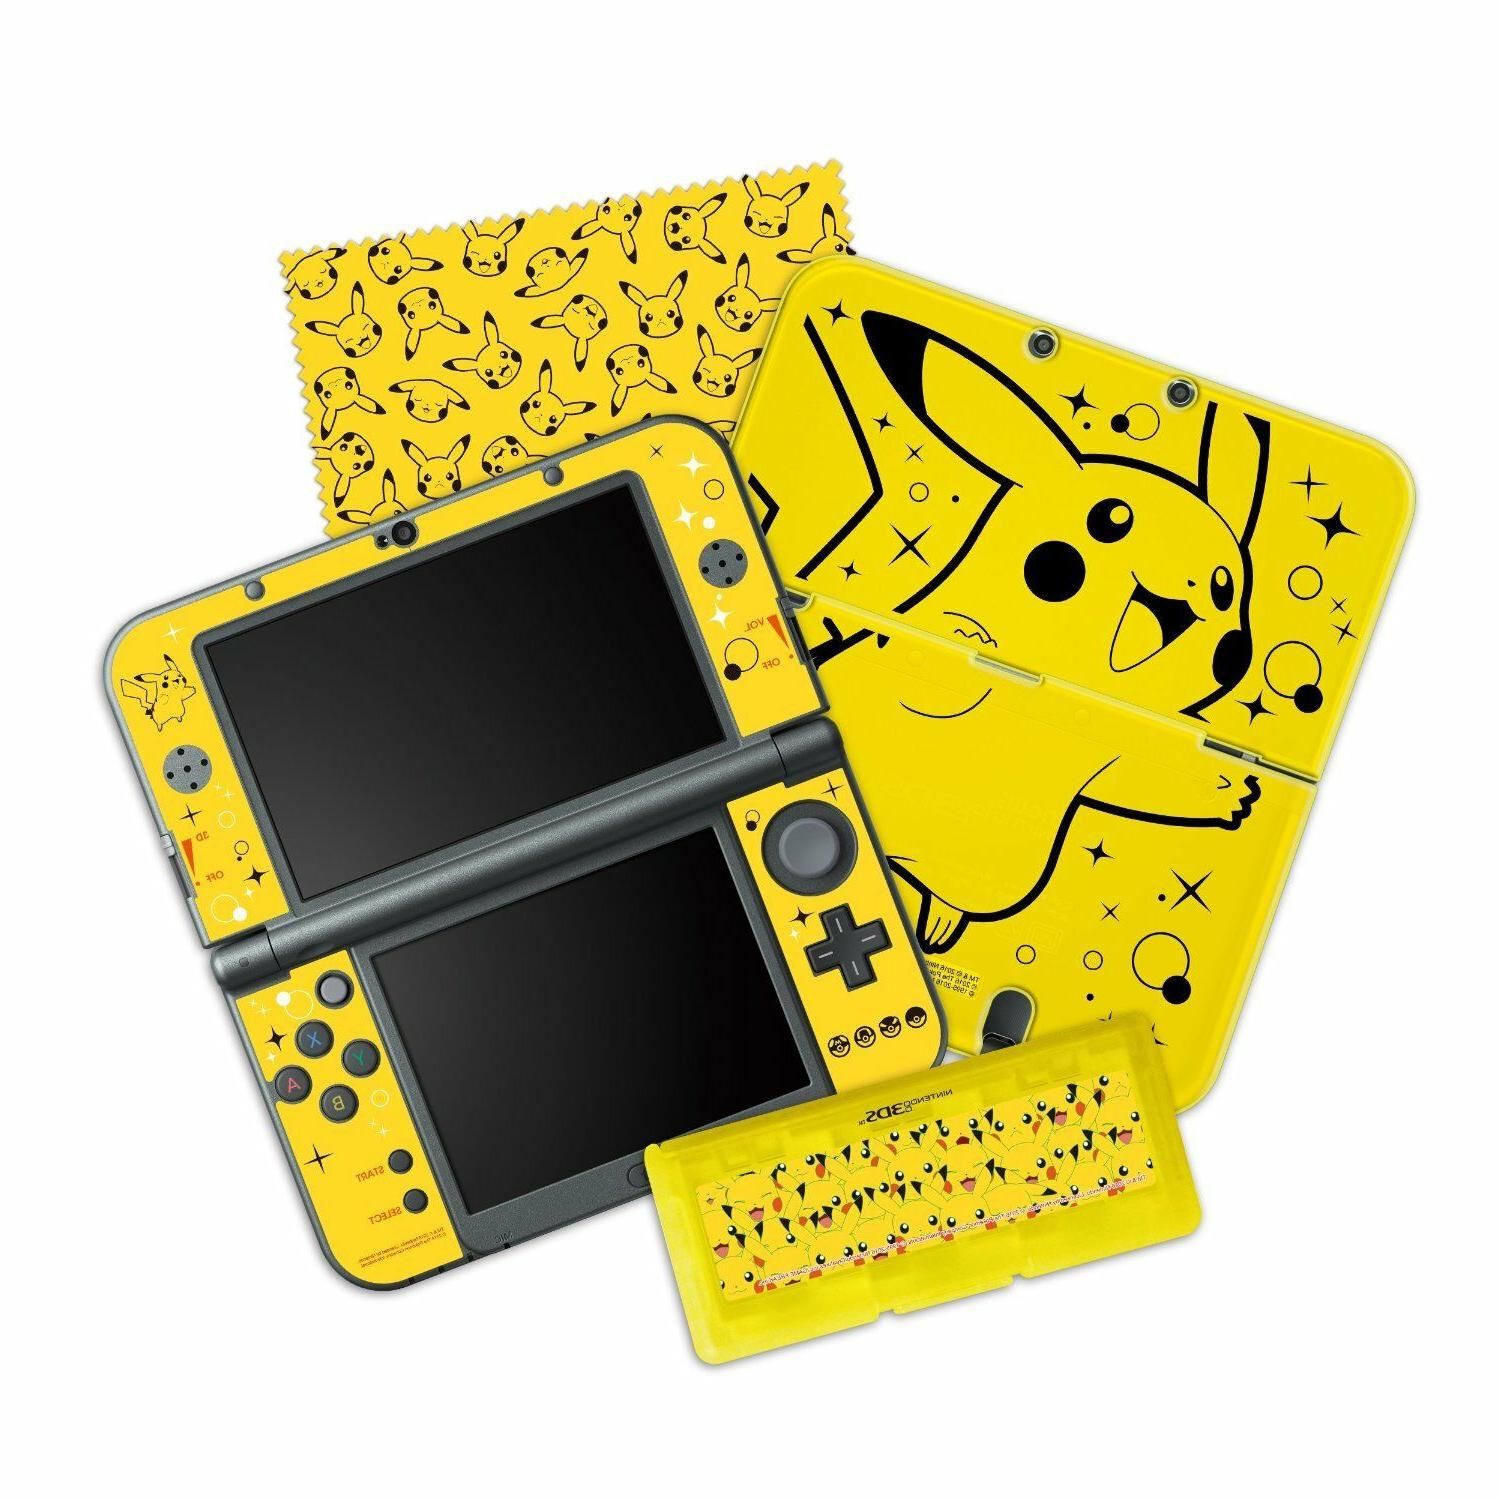 Hori - Pikachu Pack Starter Kit For New Nintendo 3ds Xl